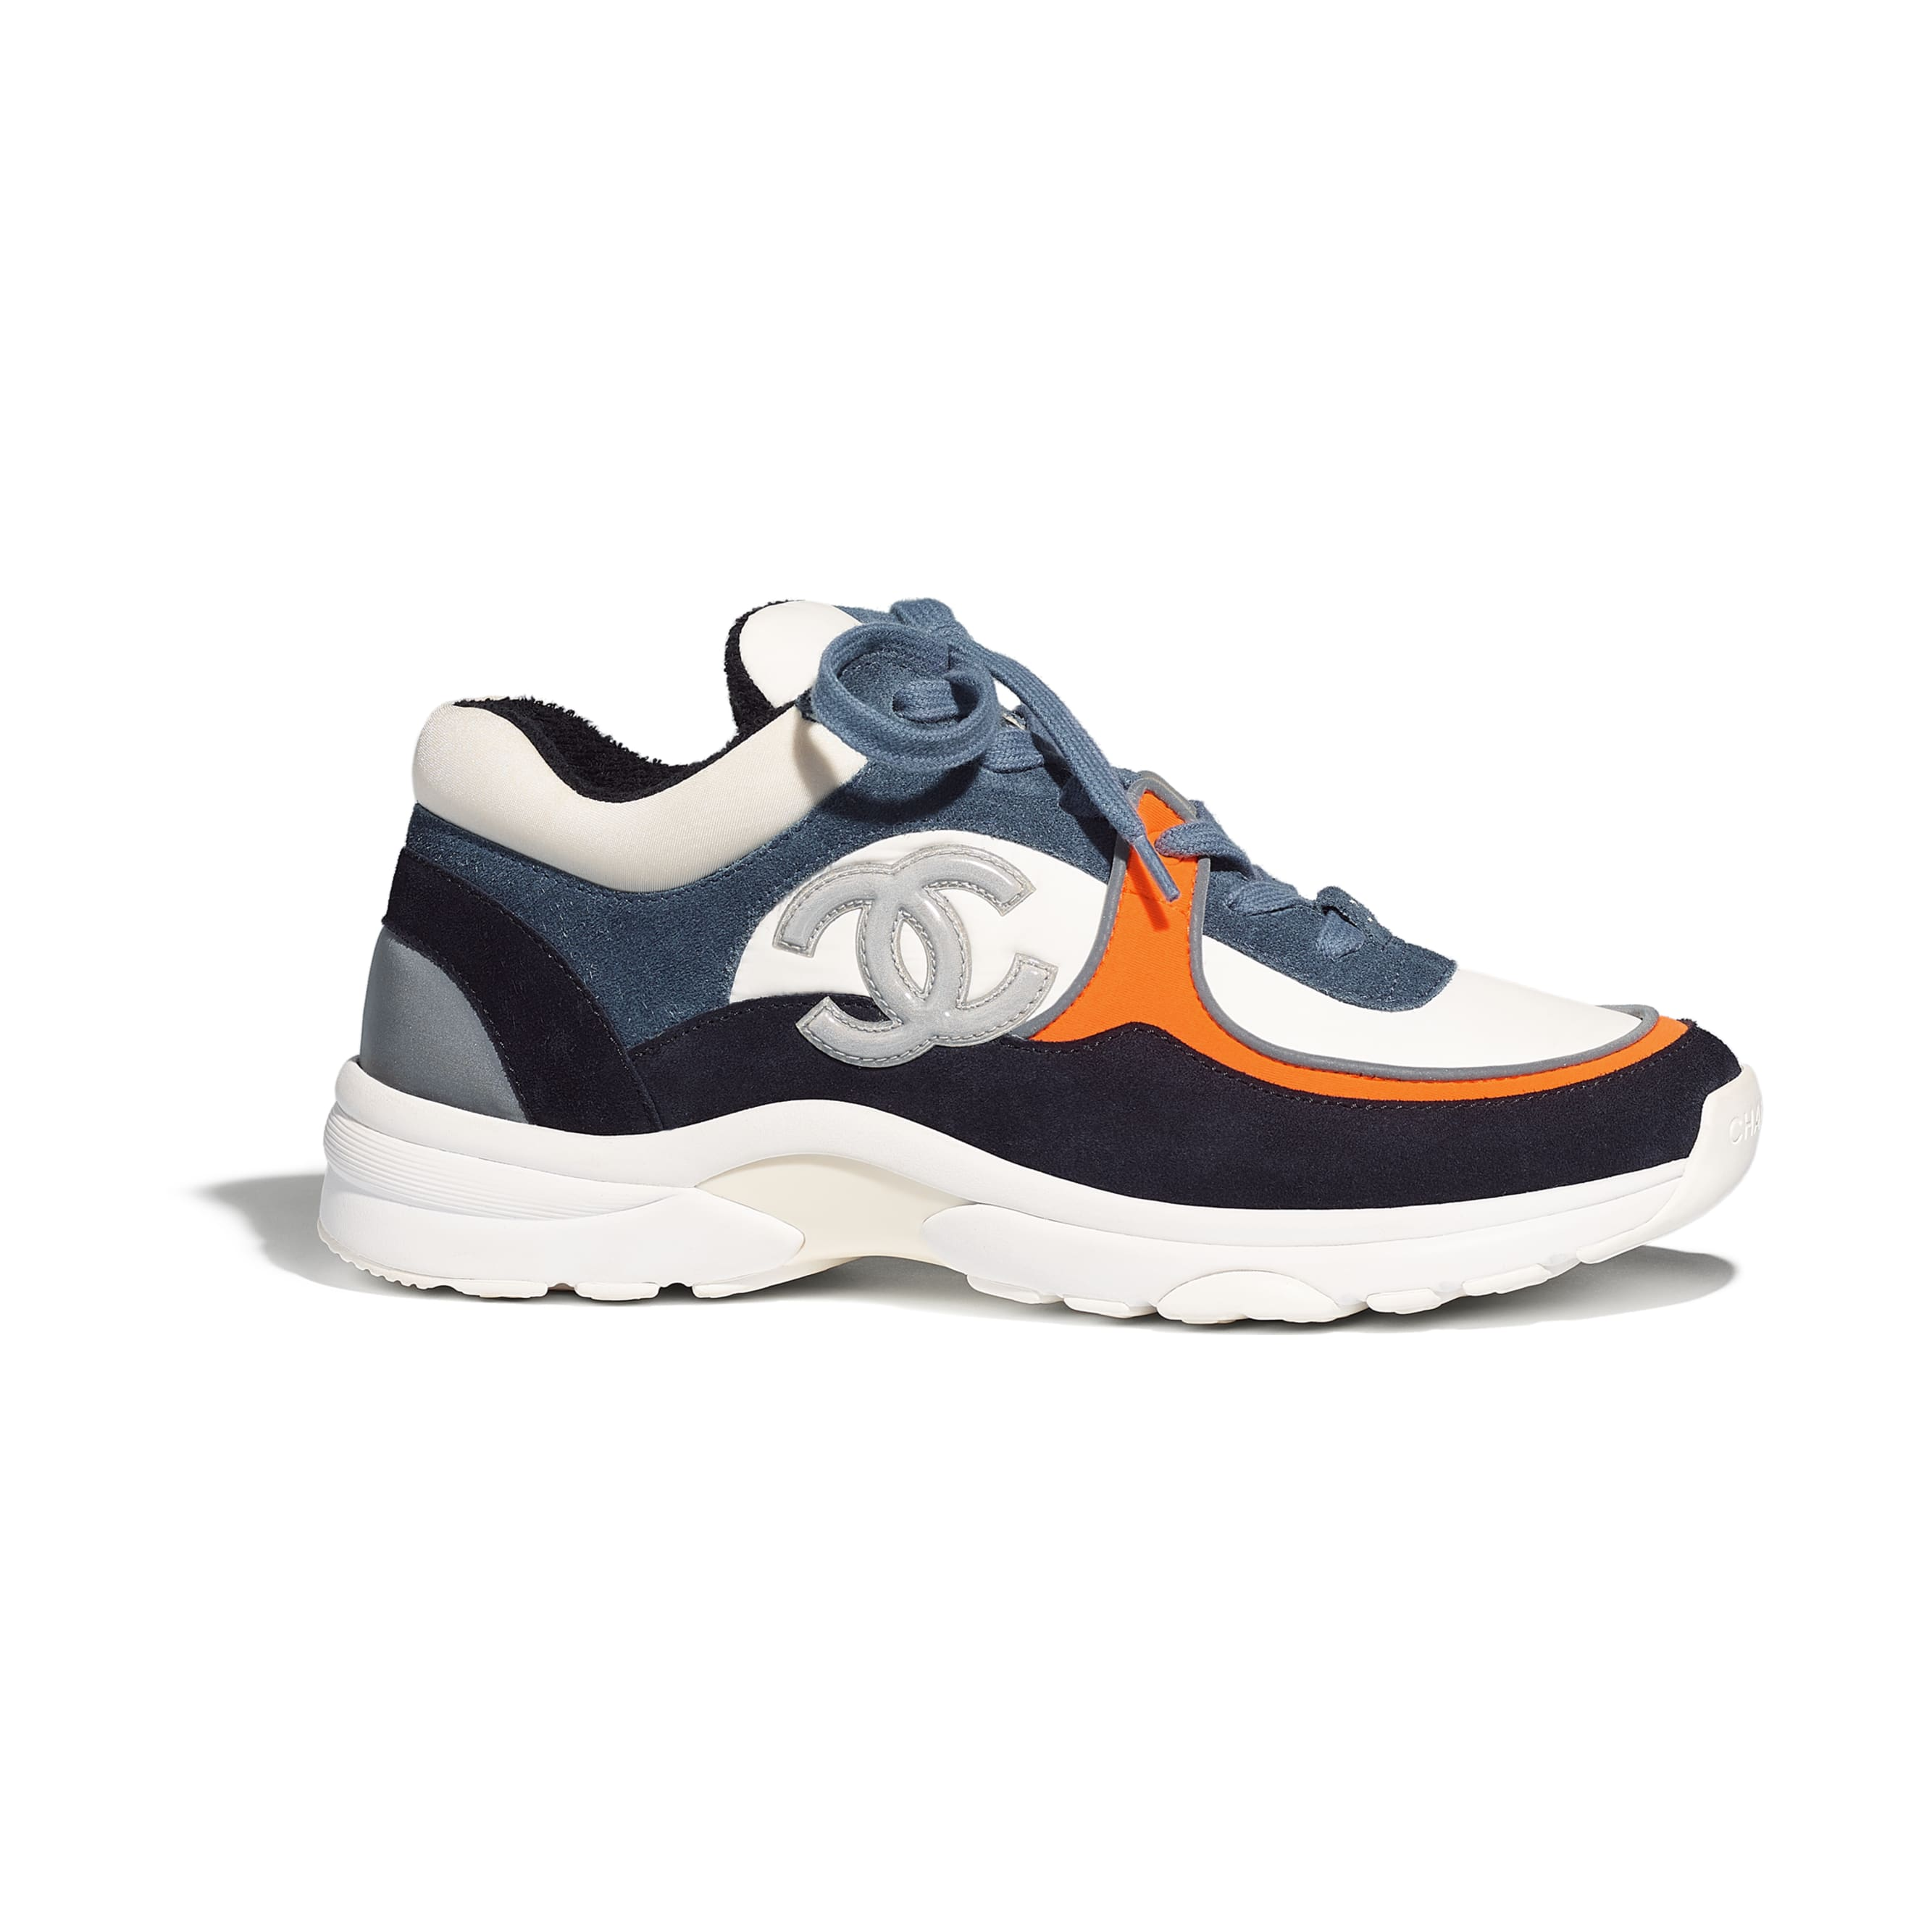 Trainers - White & Navy Blue - Calfskin & Mixed Fibers - Default view - see standard sized version